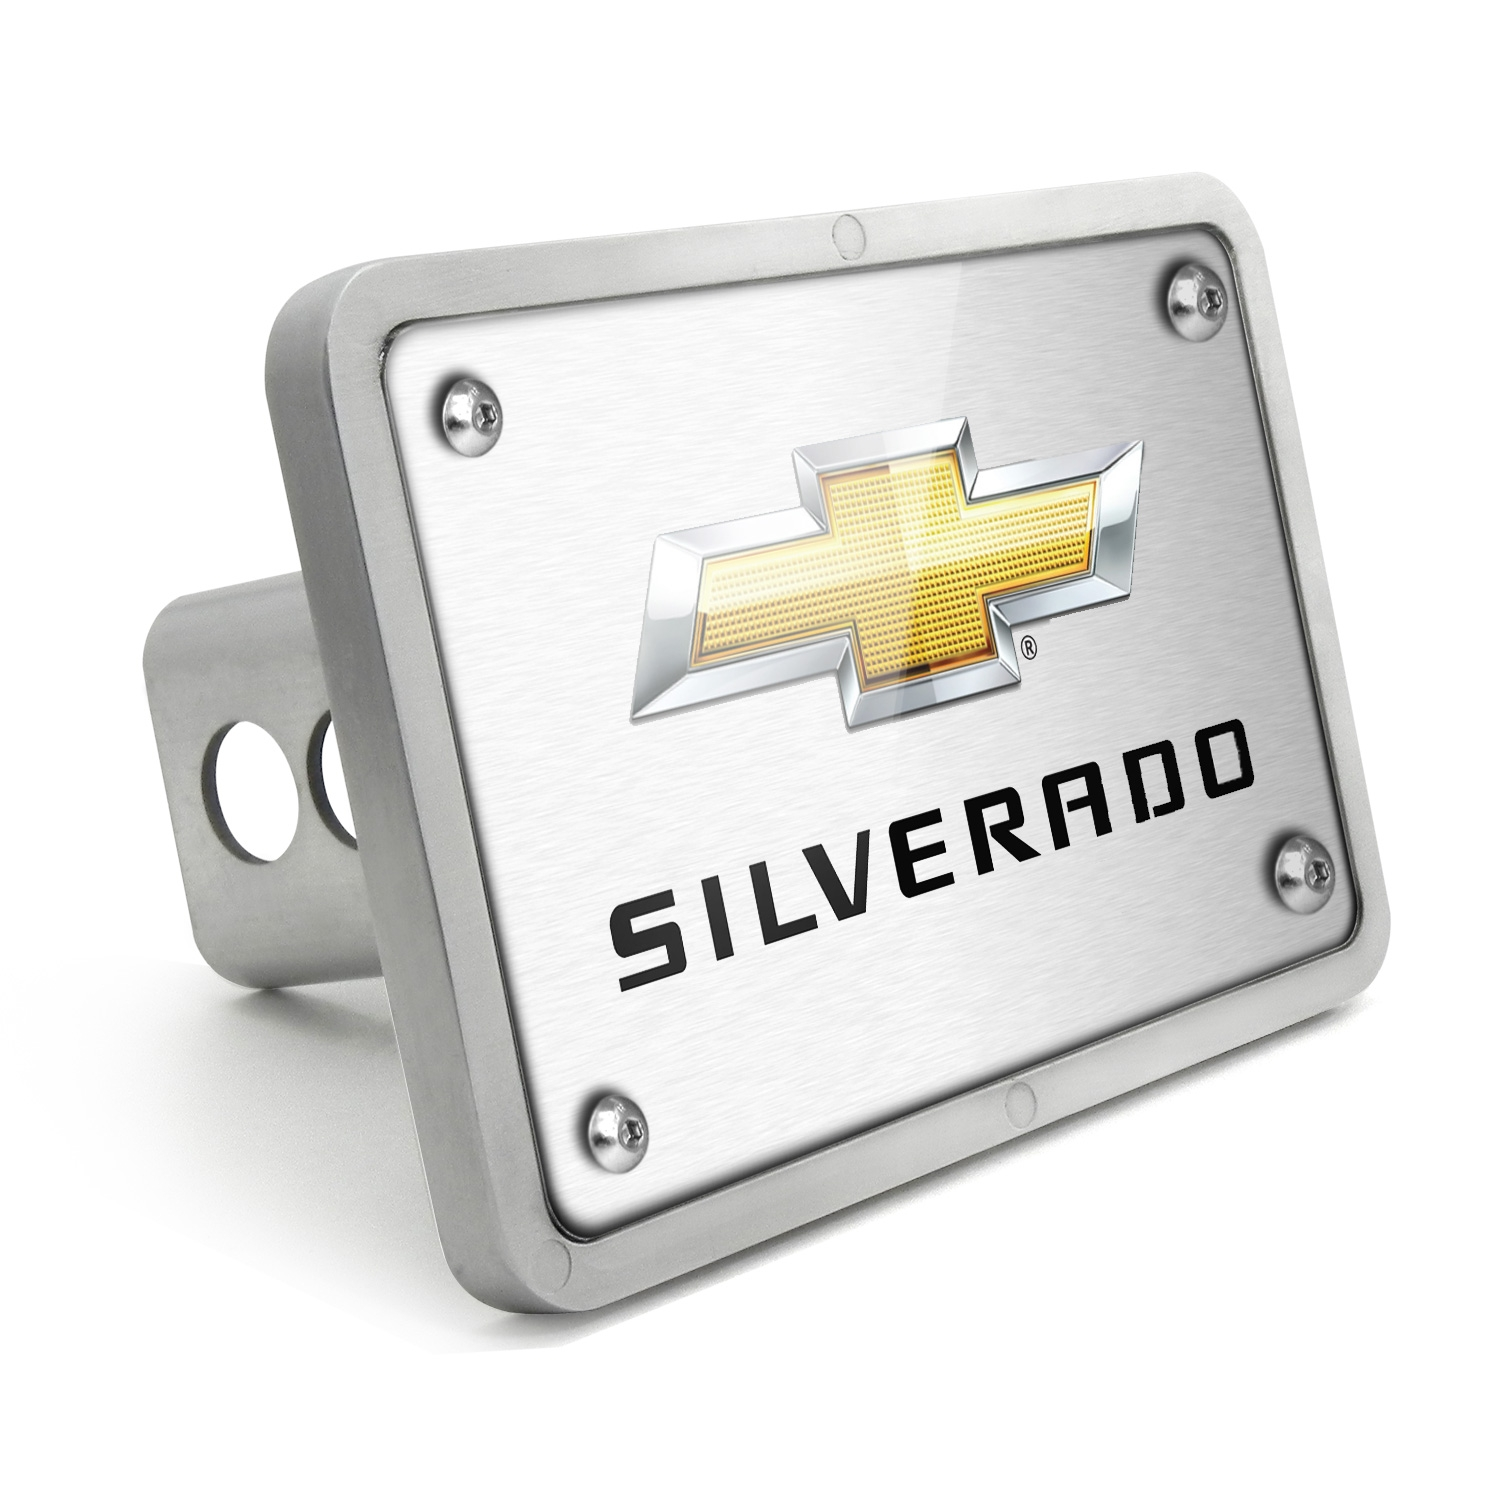 Chevrolet Silverado 2014 UV Graphic Brushed Silver Billet Aluminum 2 inch Tow Hitch Cover